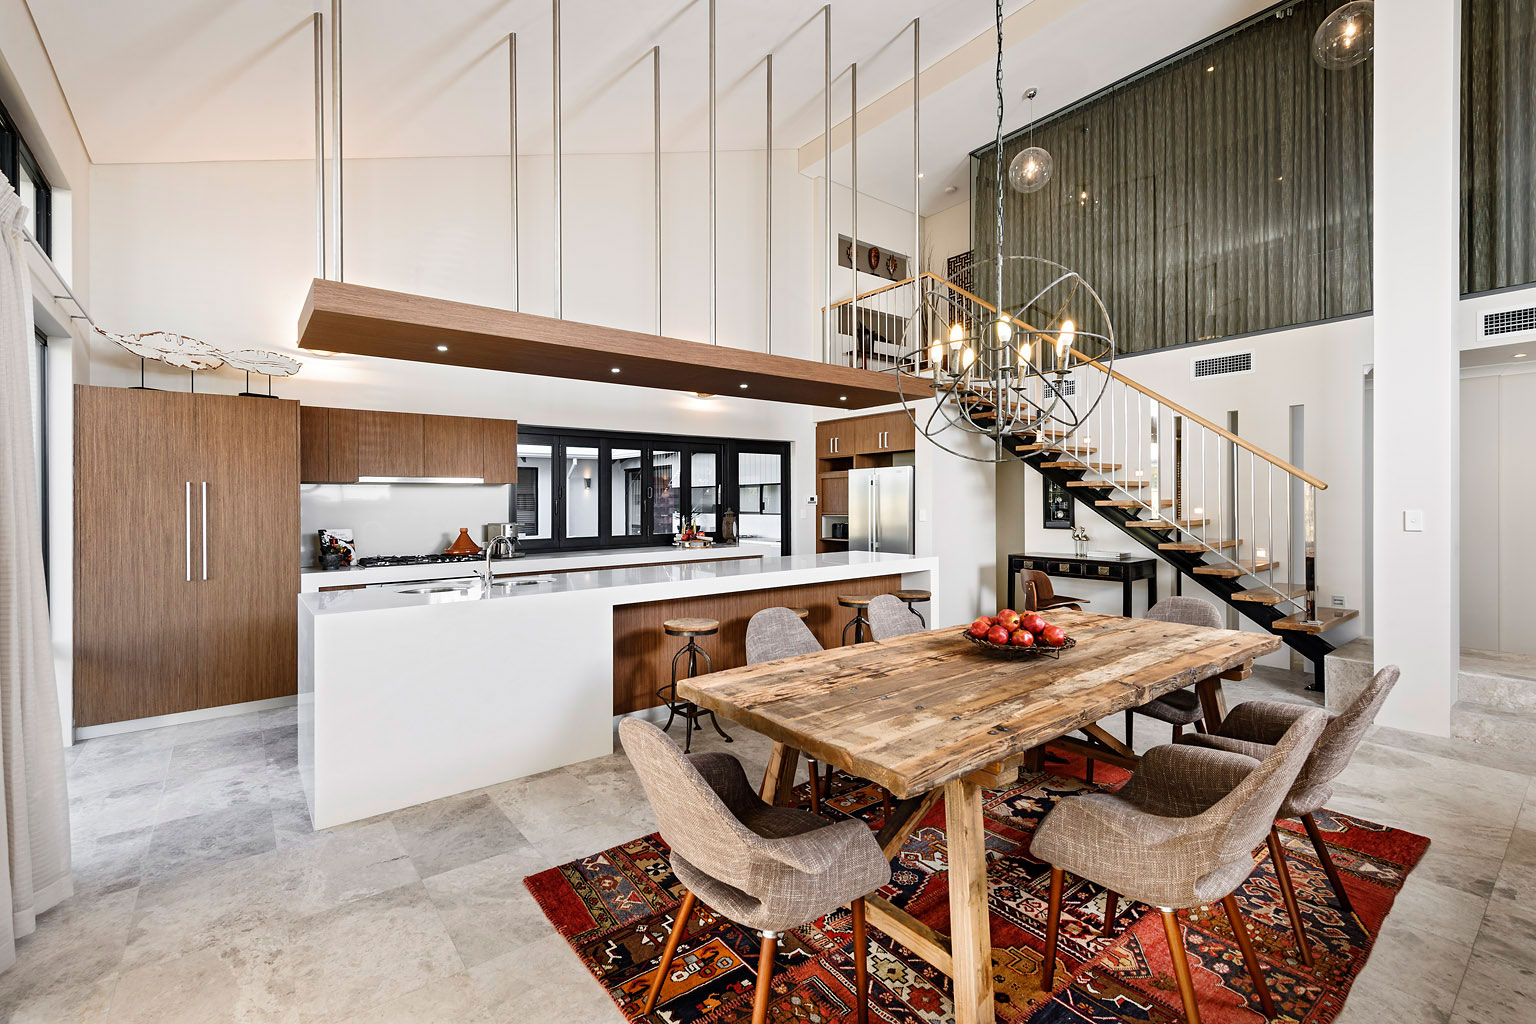 The Bletchley Loft By The Rural Building Company Homedezen